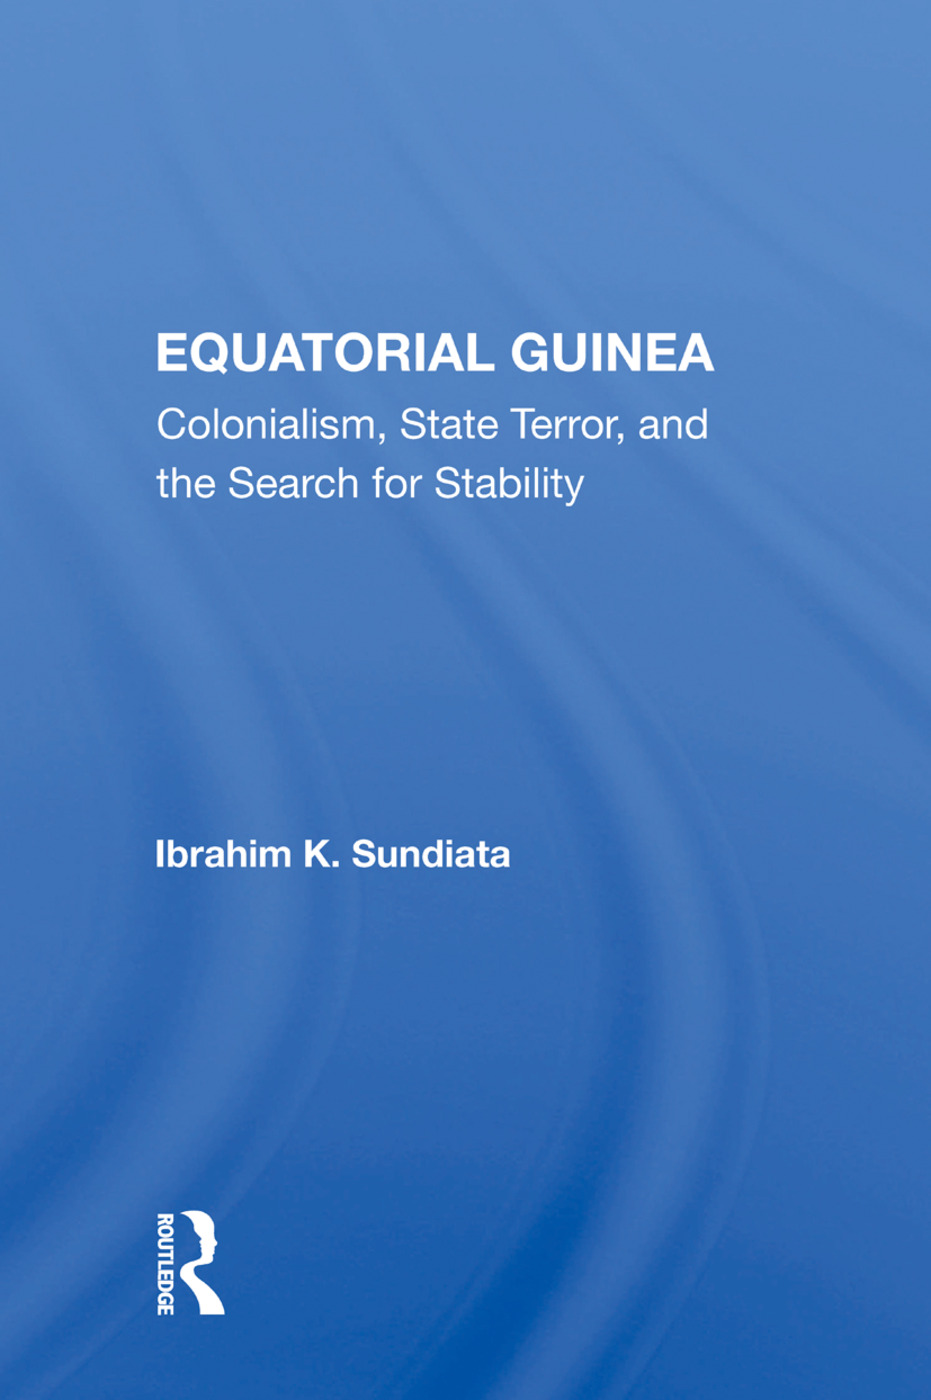 Equatorial Guinea: Colonialism, State Terror, And The Search For Stability, 1st Edition (Paperback) book cover